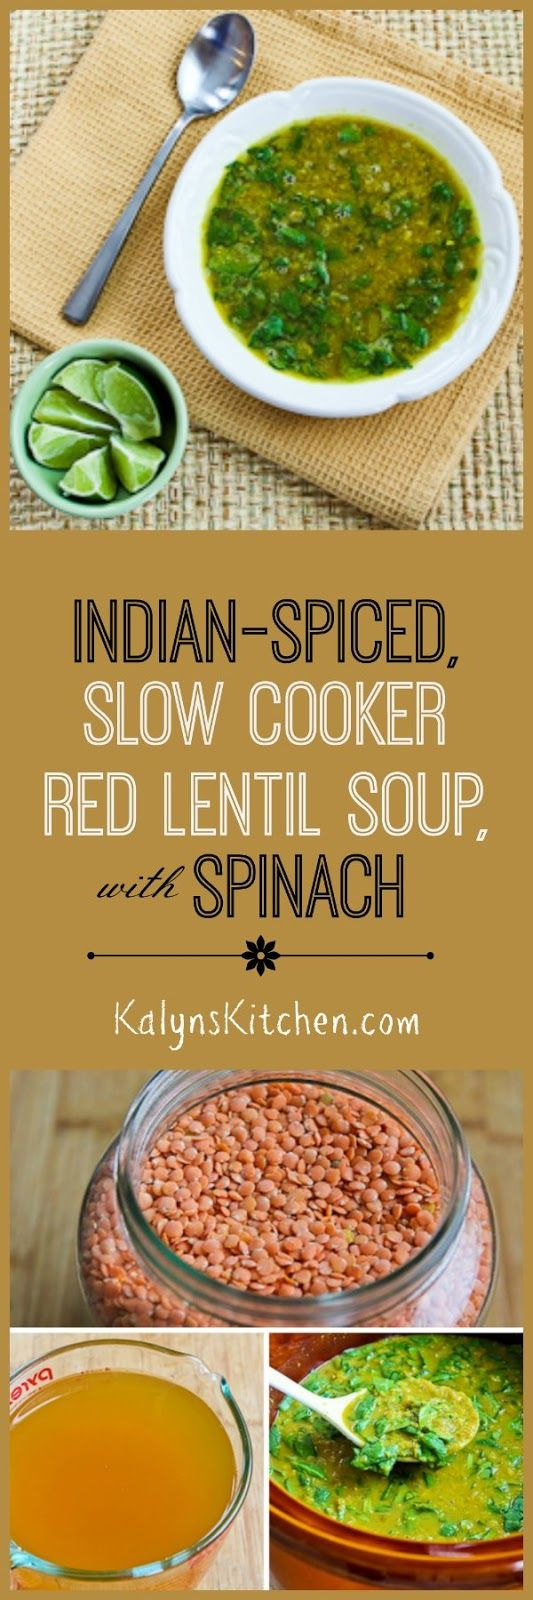 Indian-Spiced Slow Cooker Red Lentil Soup with Spinach and ...